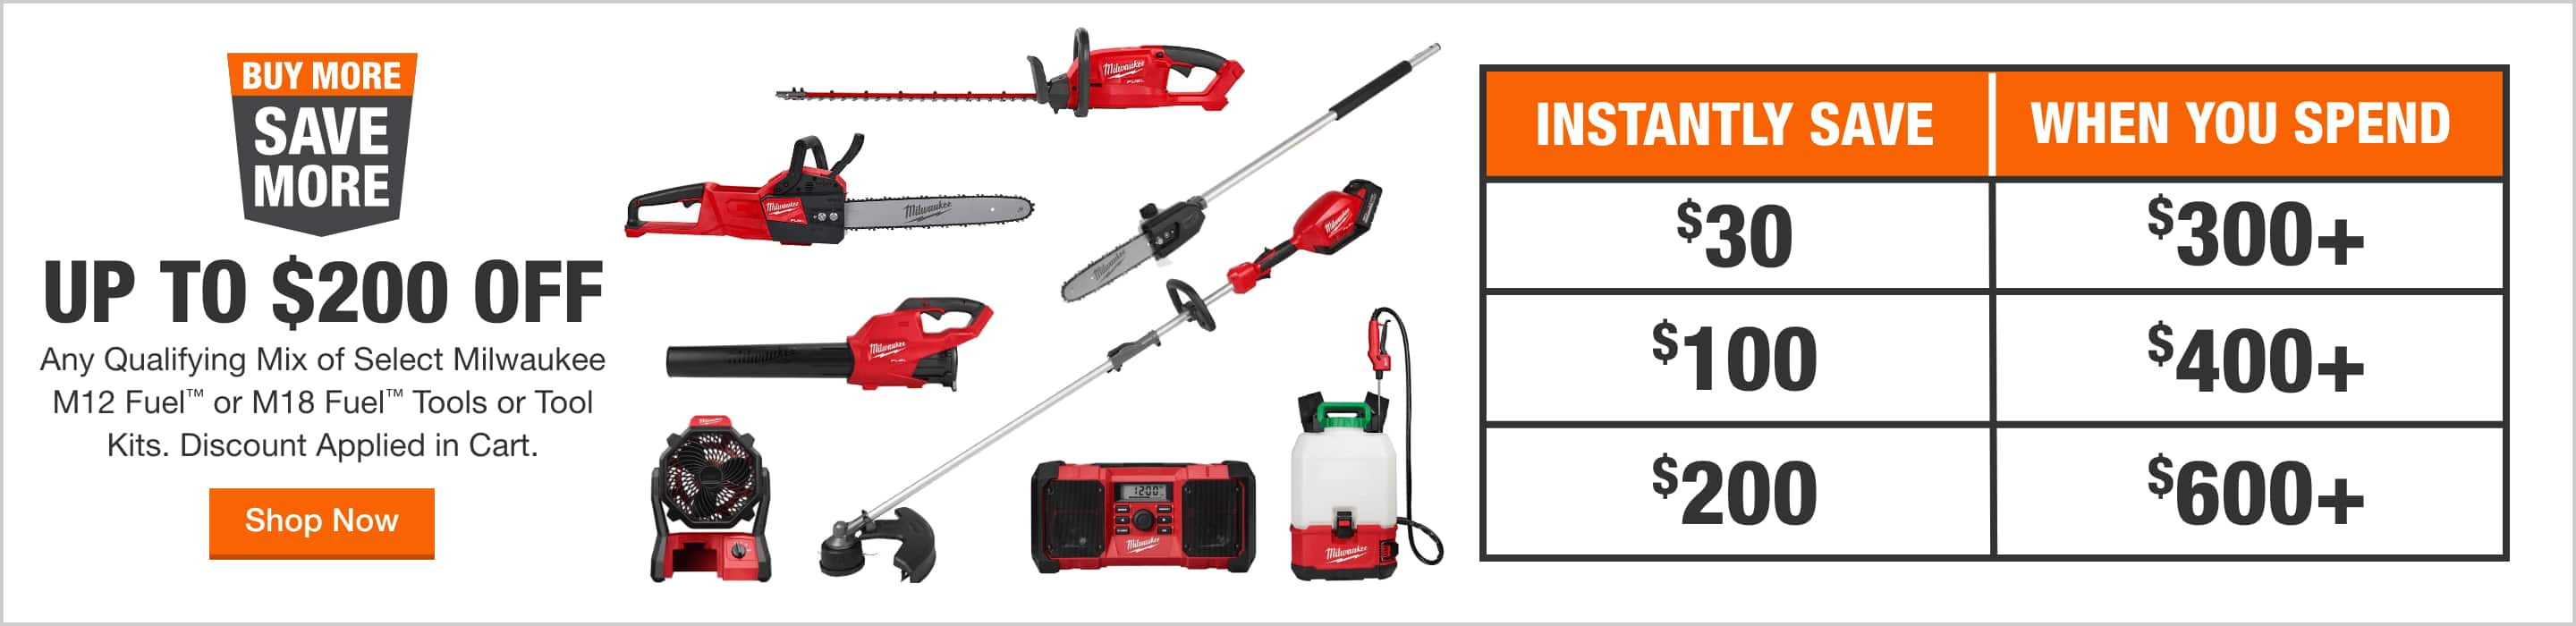 UP TO $200 OFF Any Qualifying Mix of Select Milwaukee M12 Fuel™ & M18 Fuel™ Tools, System Starter Kits Discounts Applied in Cart